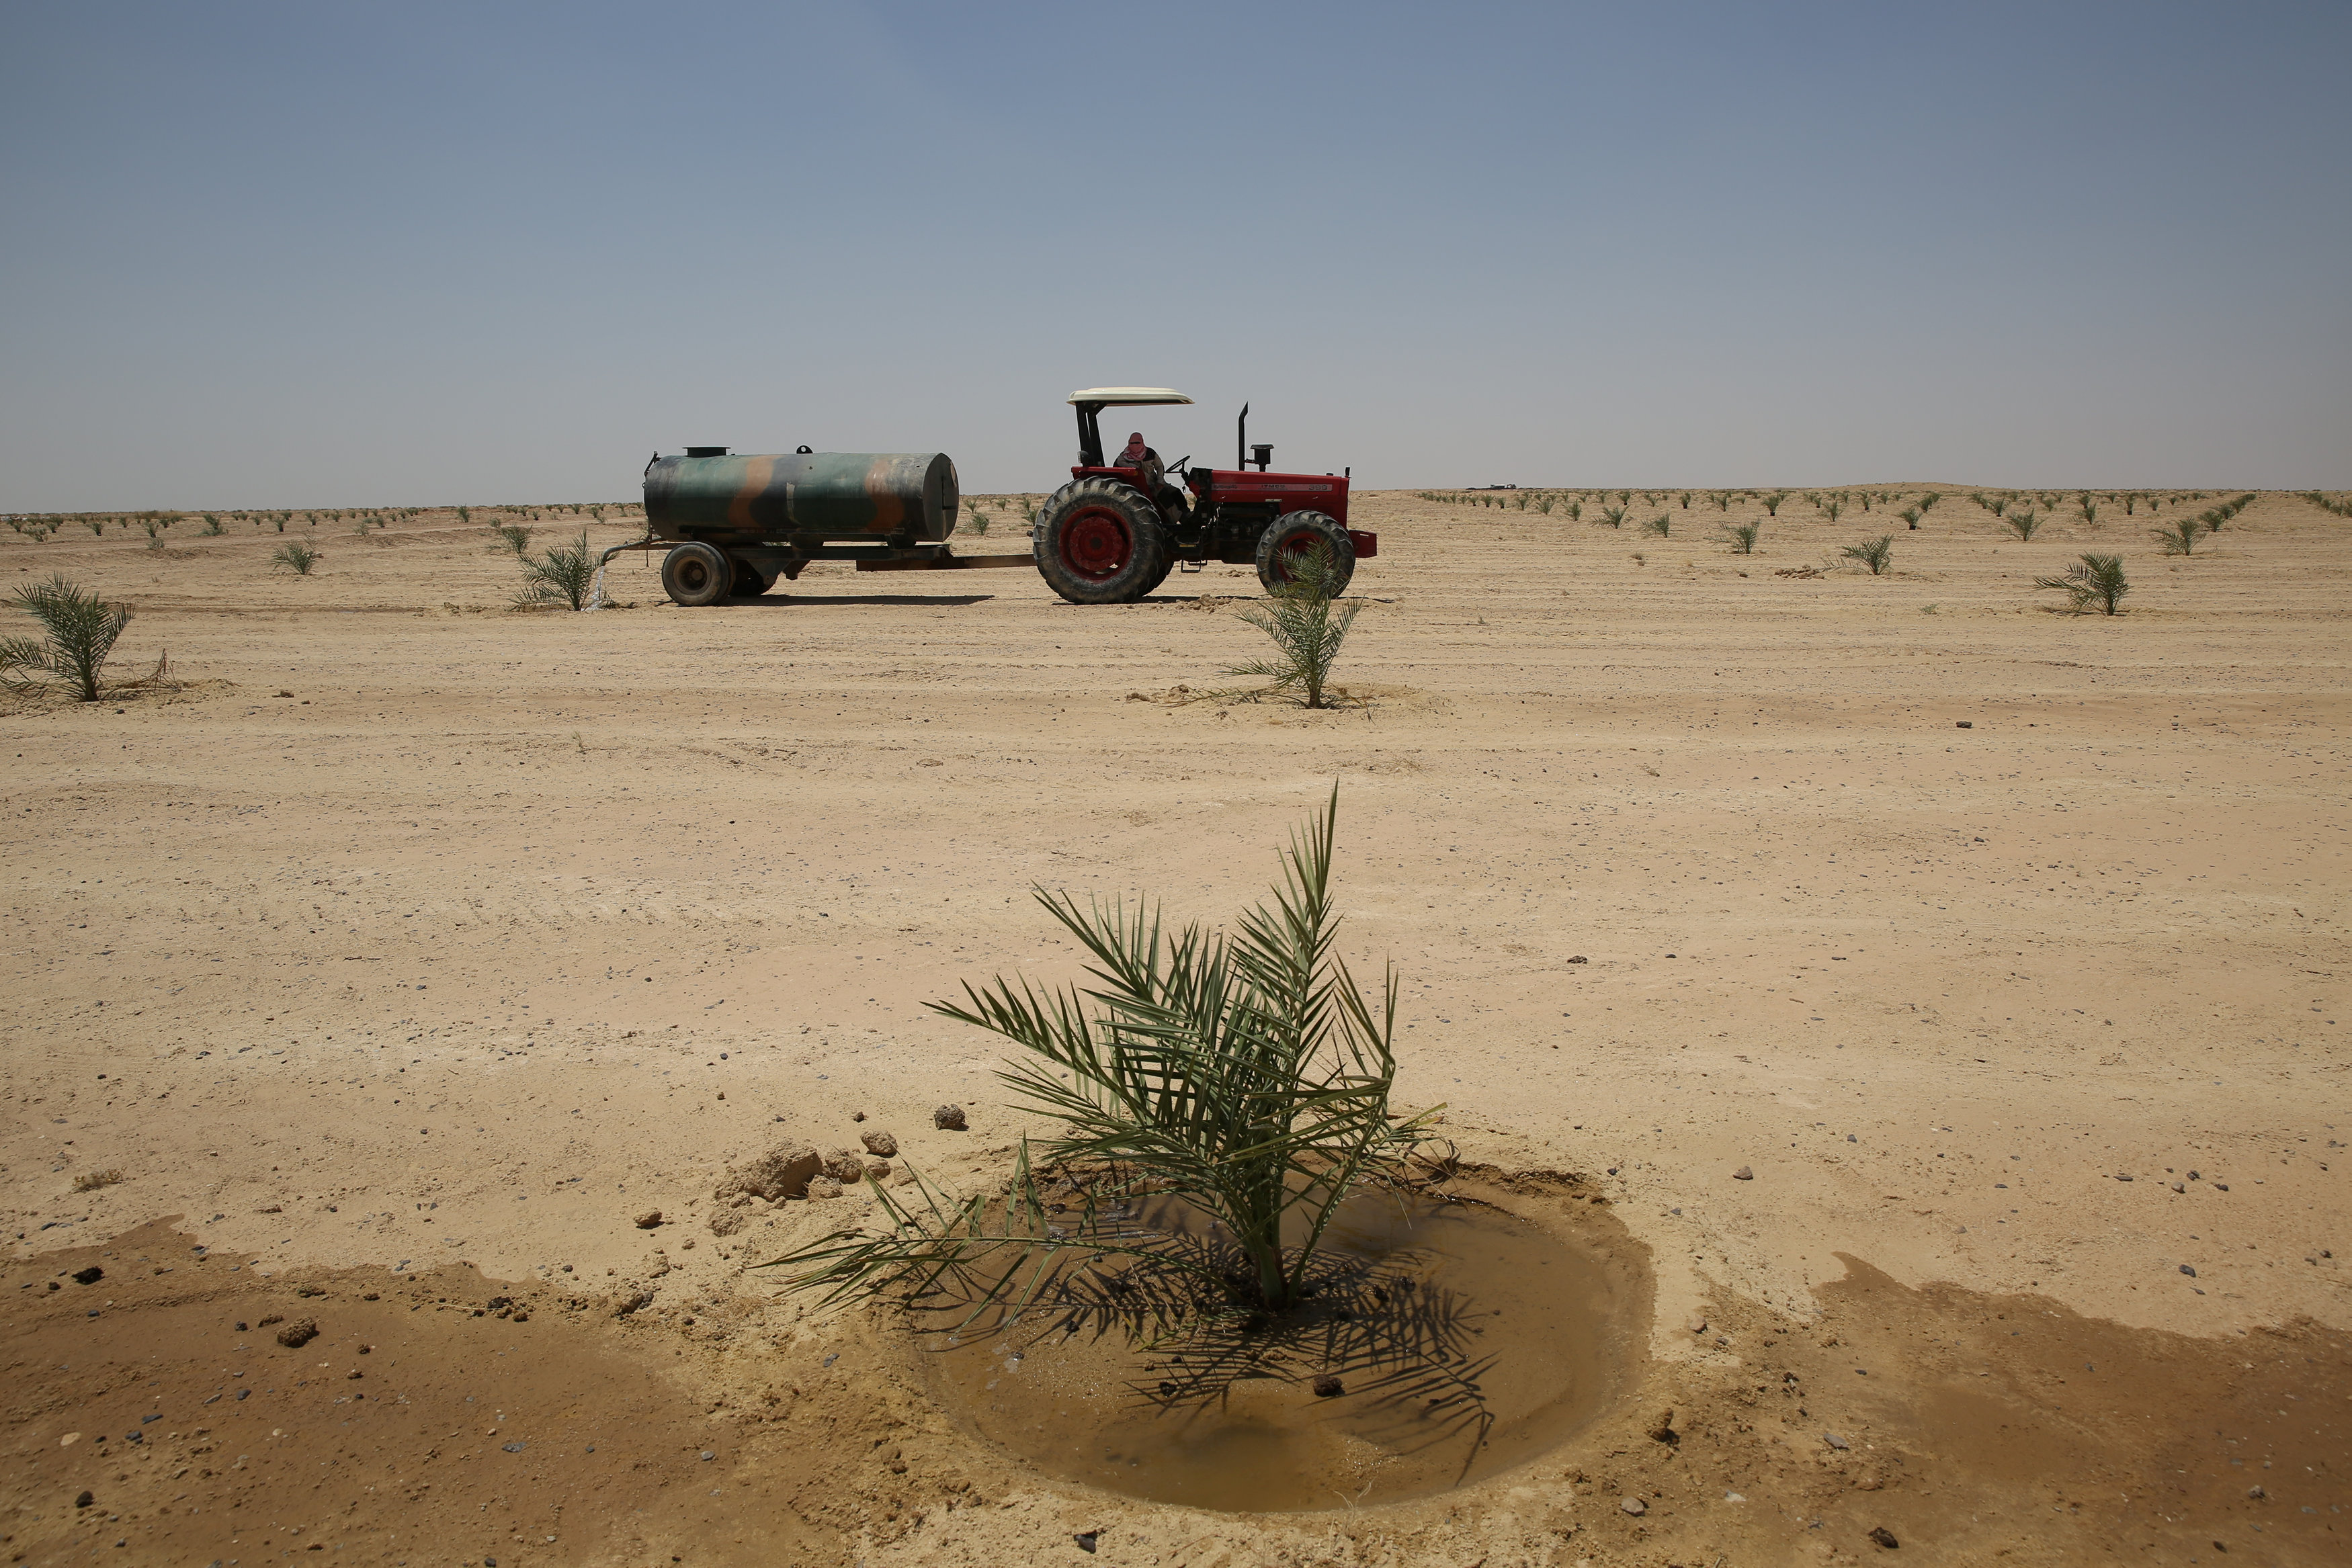 Iraq to plant 70,000 date palms to revive production of crop